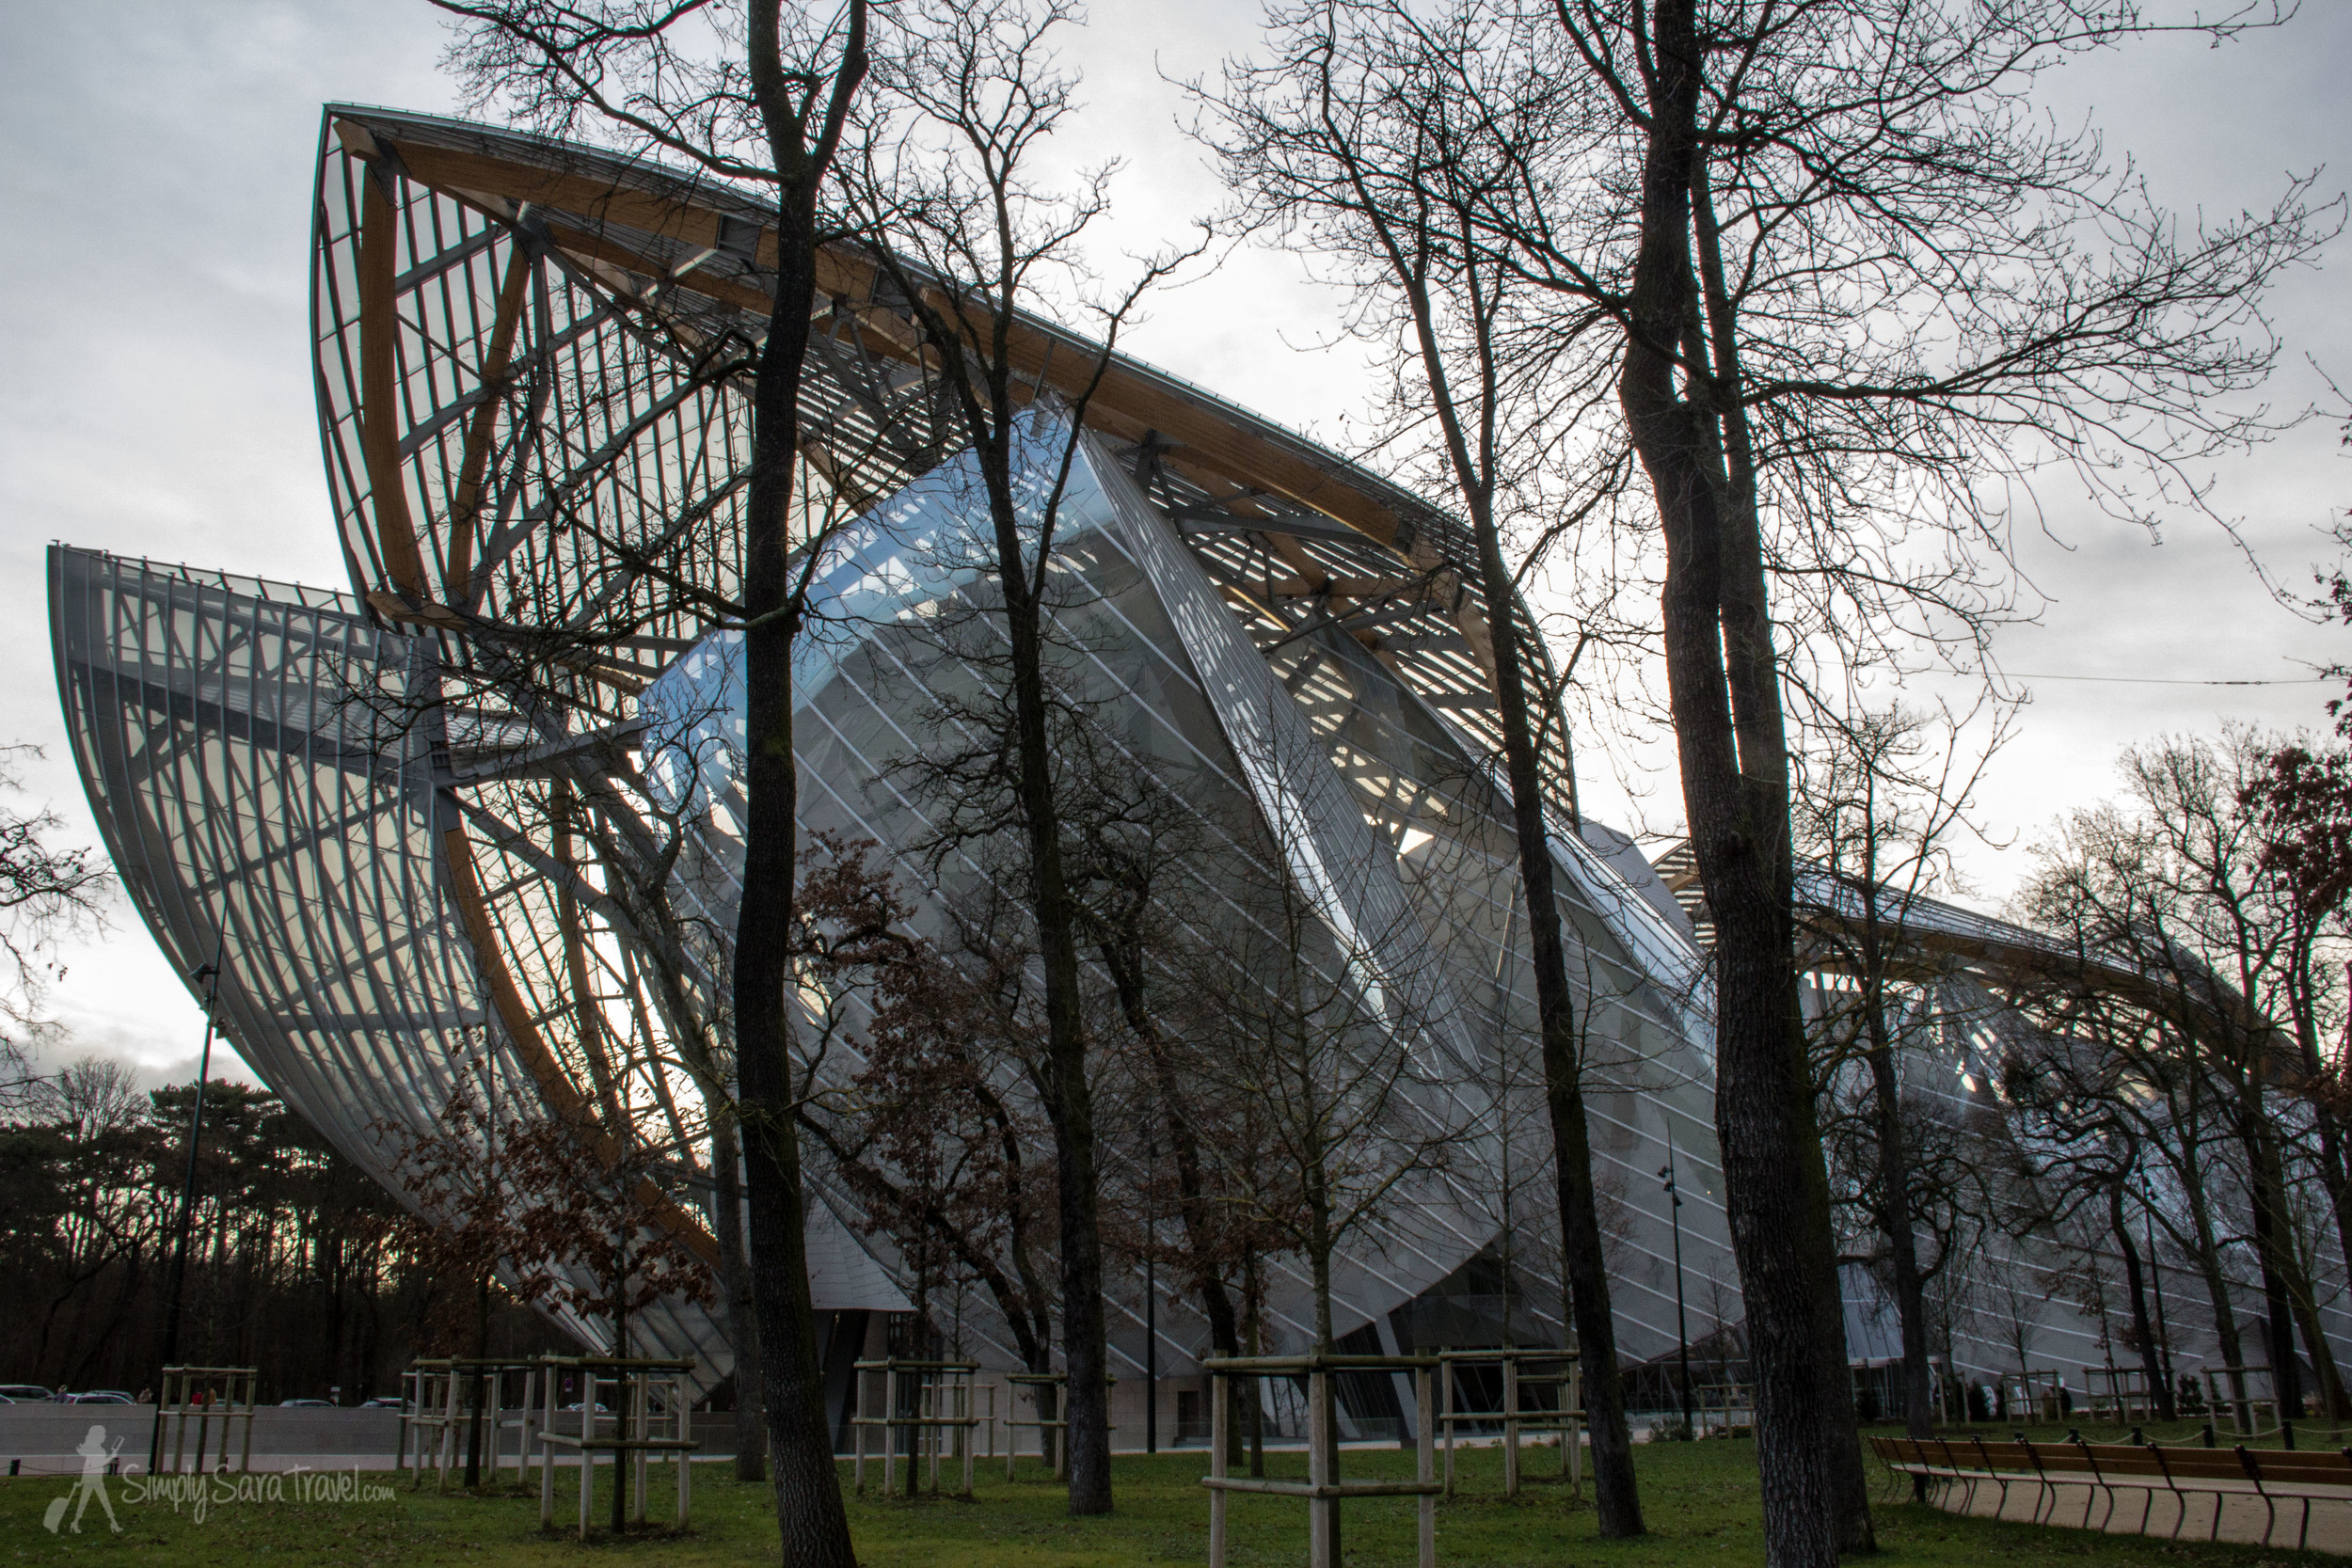 I wanted you to get a feel for the elements of the building before showing you the big picture if you are unfamiliar with it. Here it is, the ship-like Fondation Louis Vuitton sailing at the edge ofthe Jardin d'Acclimatation.